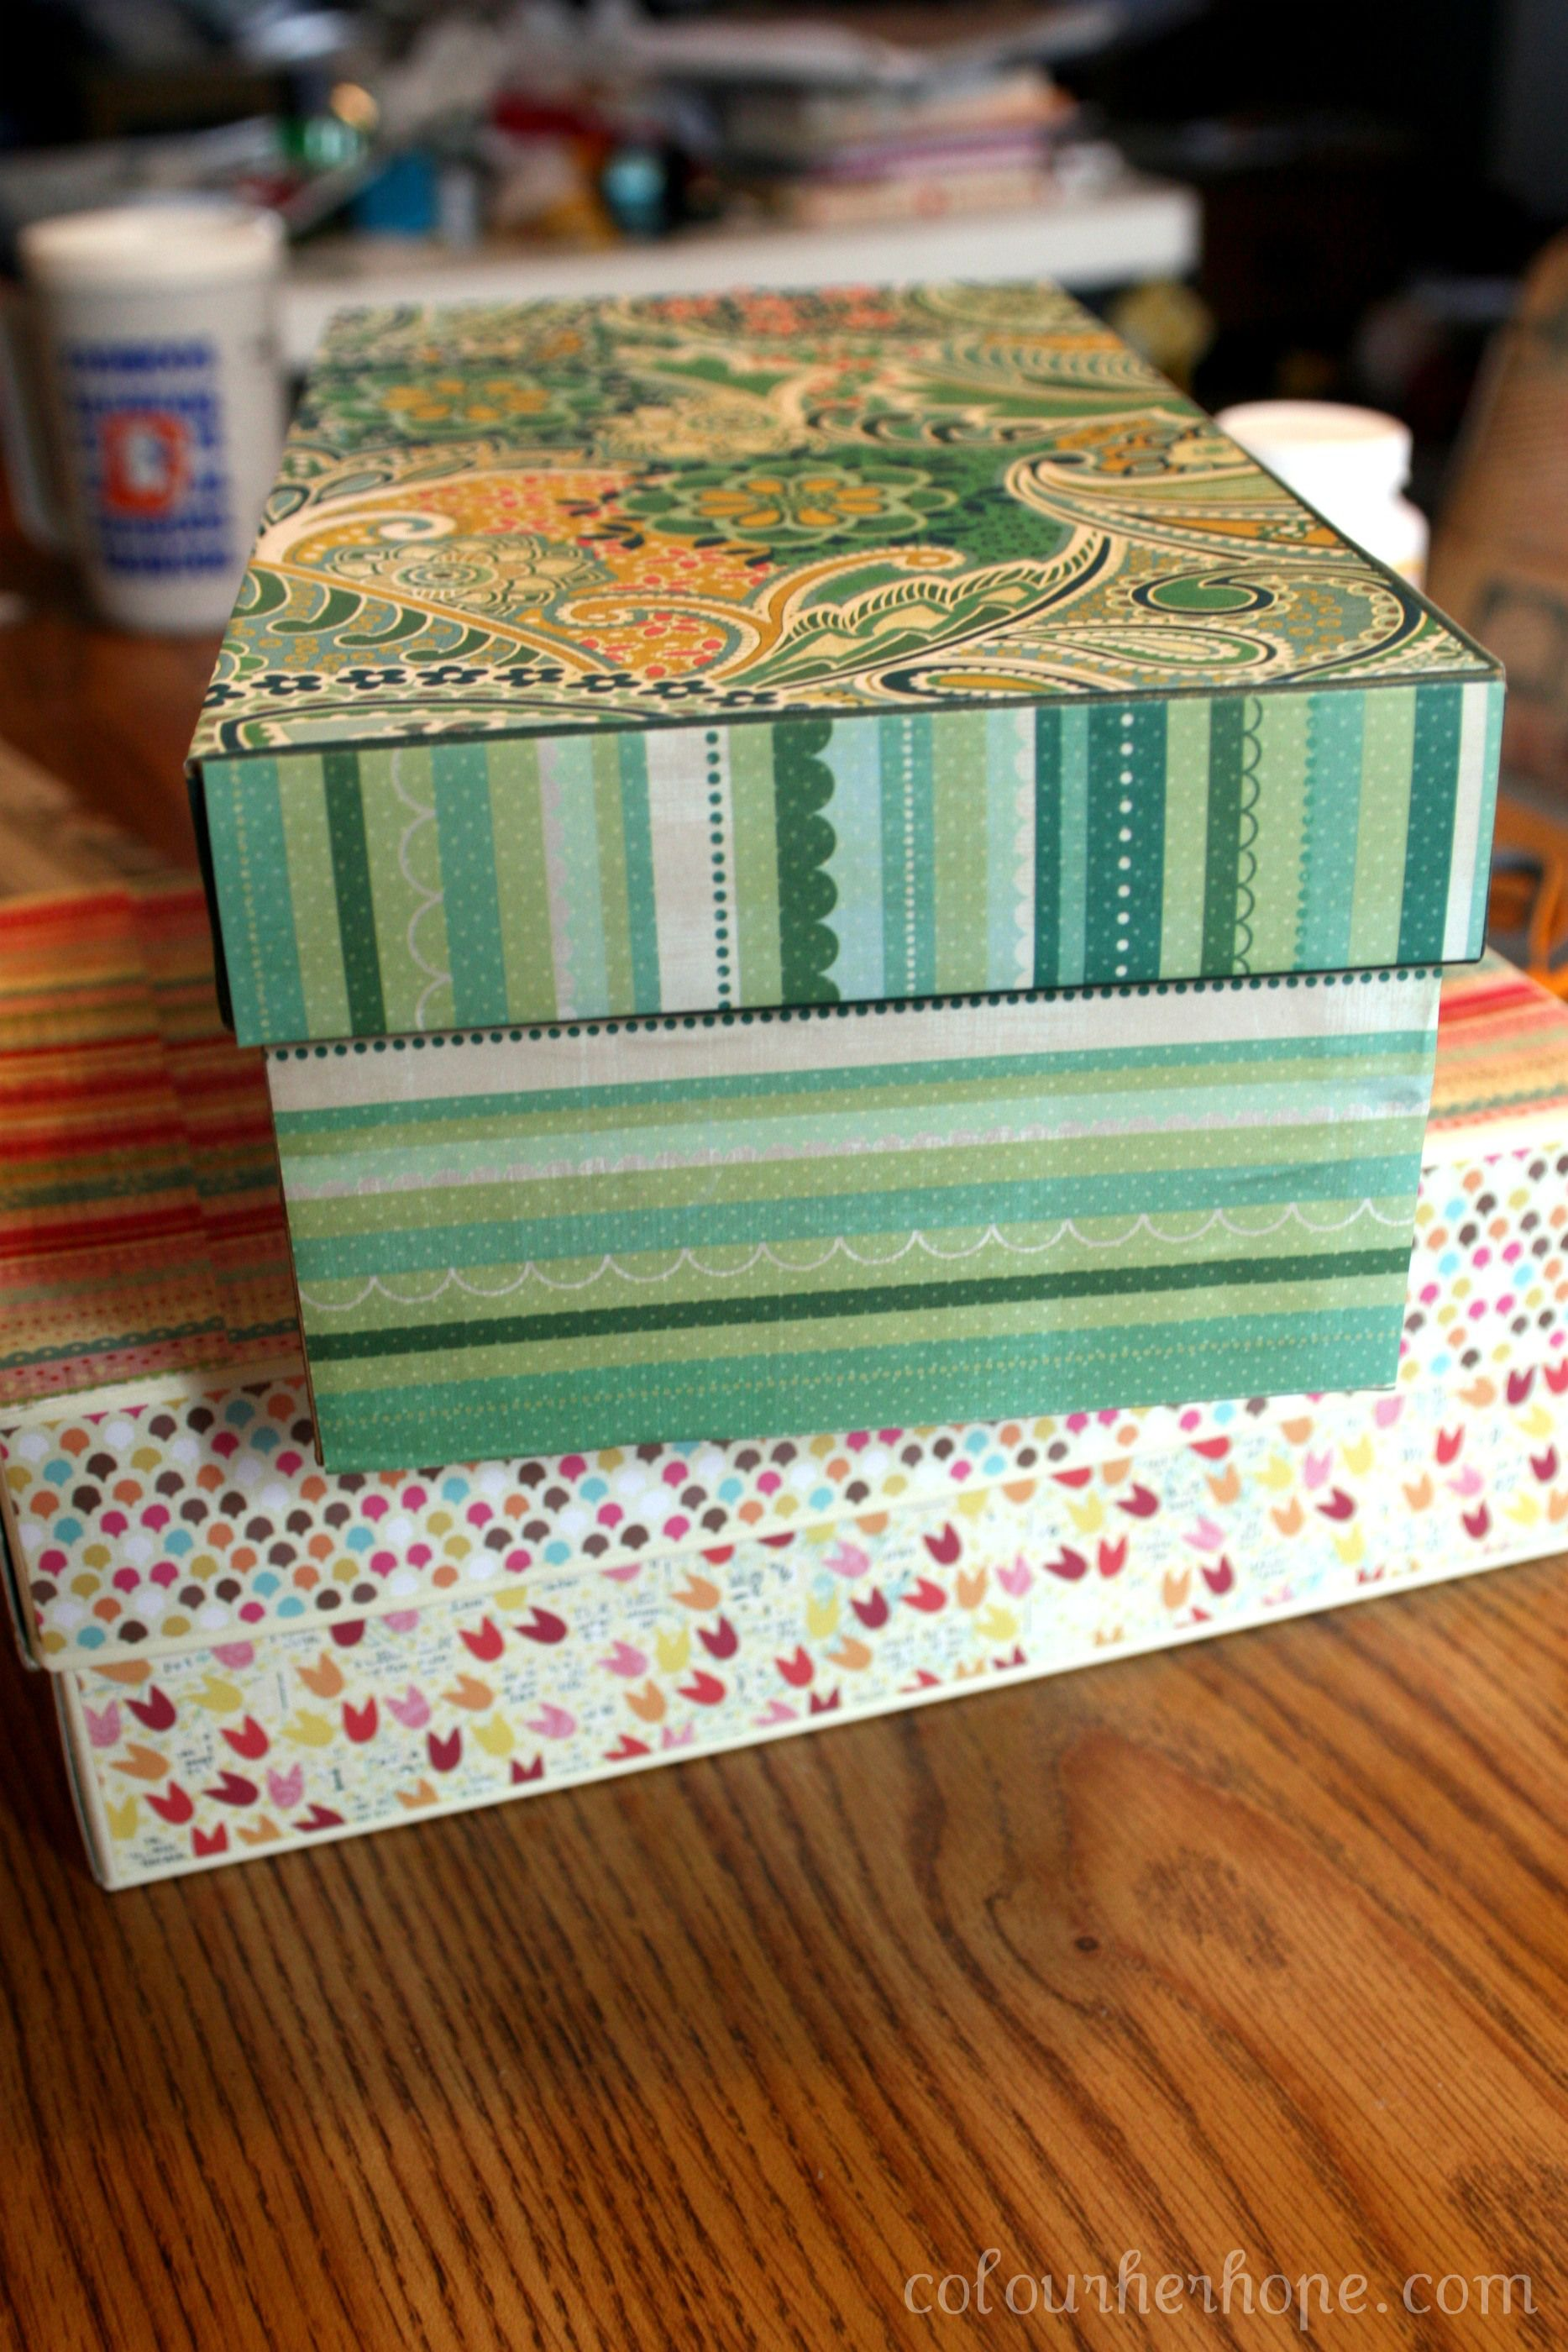 Decorate Shoe Box Decorate Shoe Boxes  Storage  Pinterest  Decorated Shoes Box